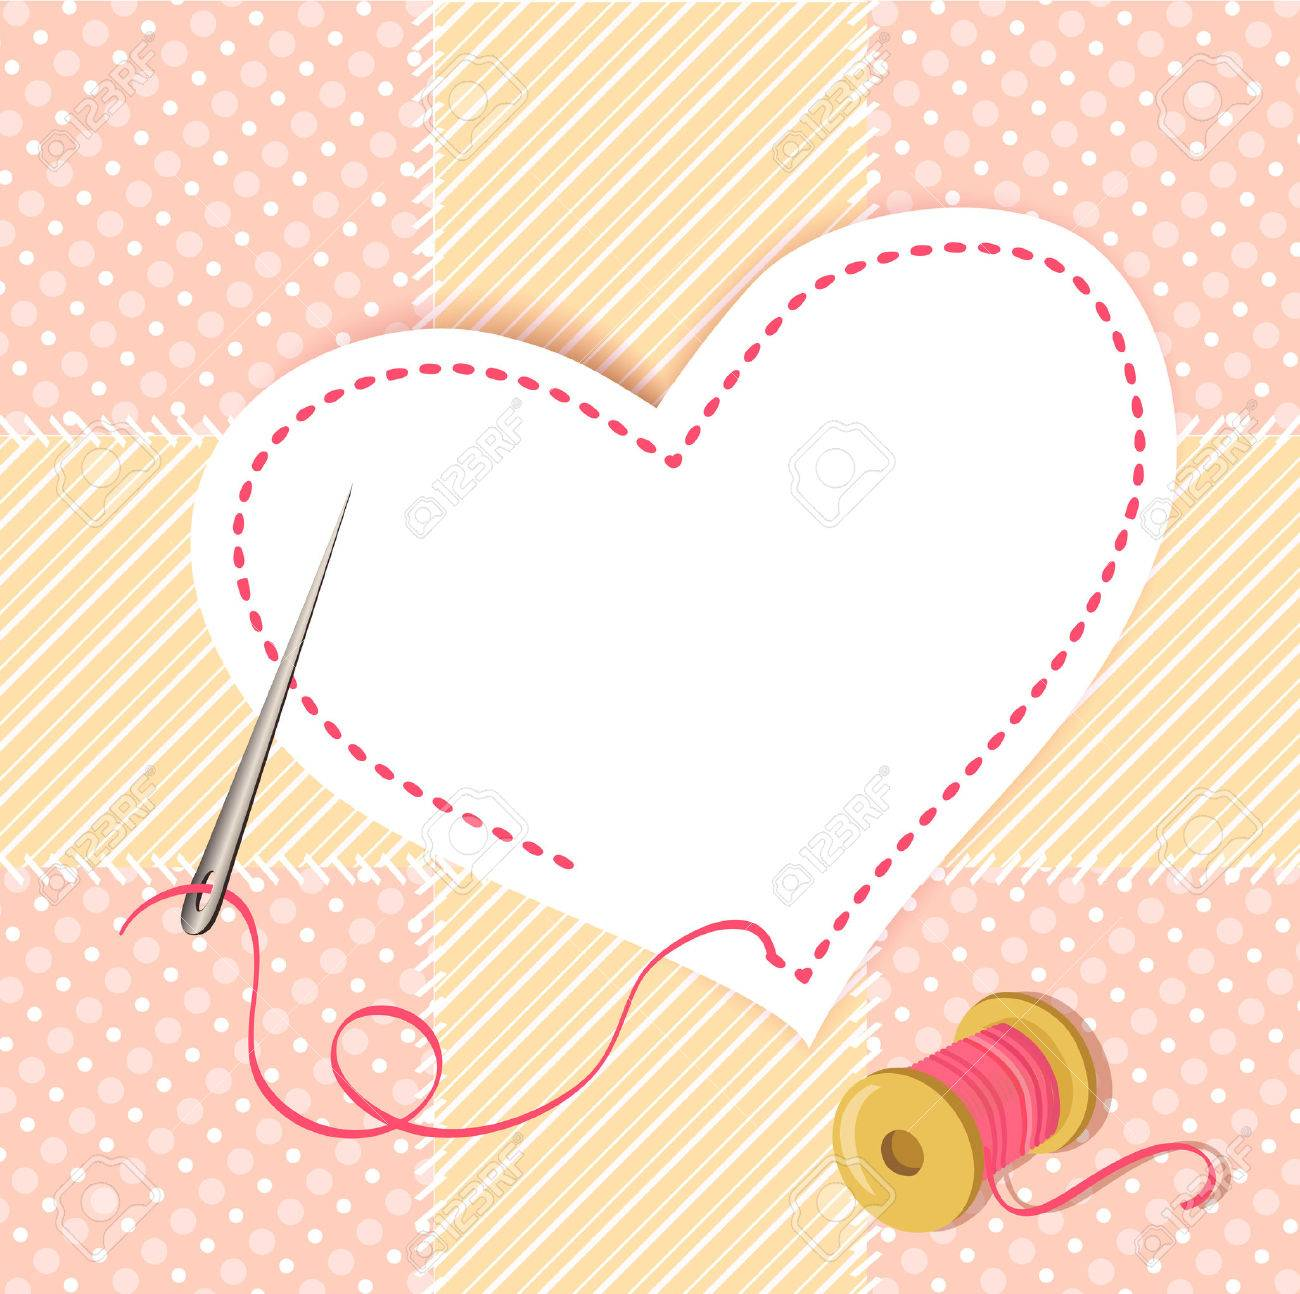 patchwork heart with a needle thread. vector illustration Standard-Bild - 26233852